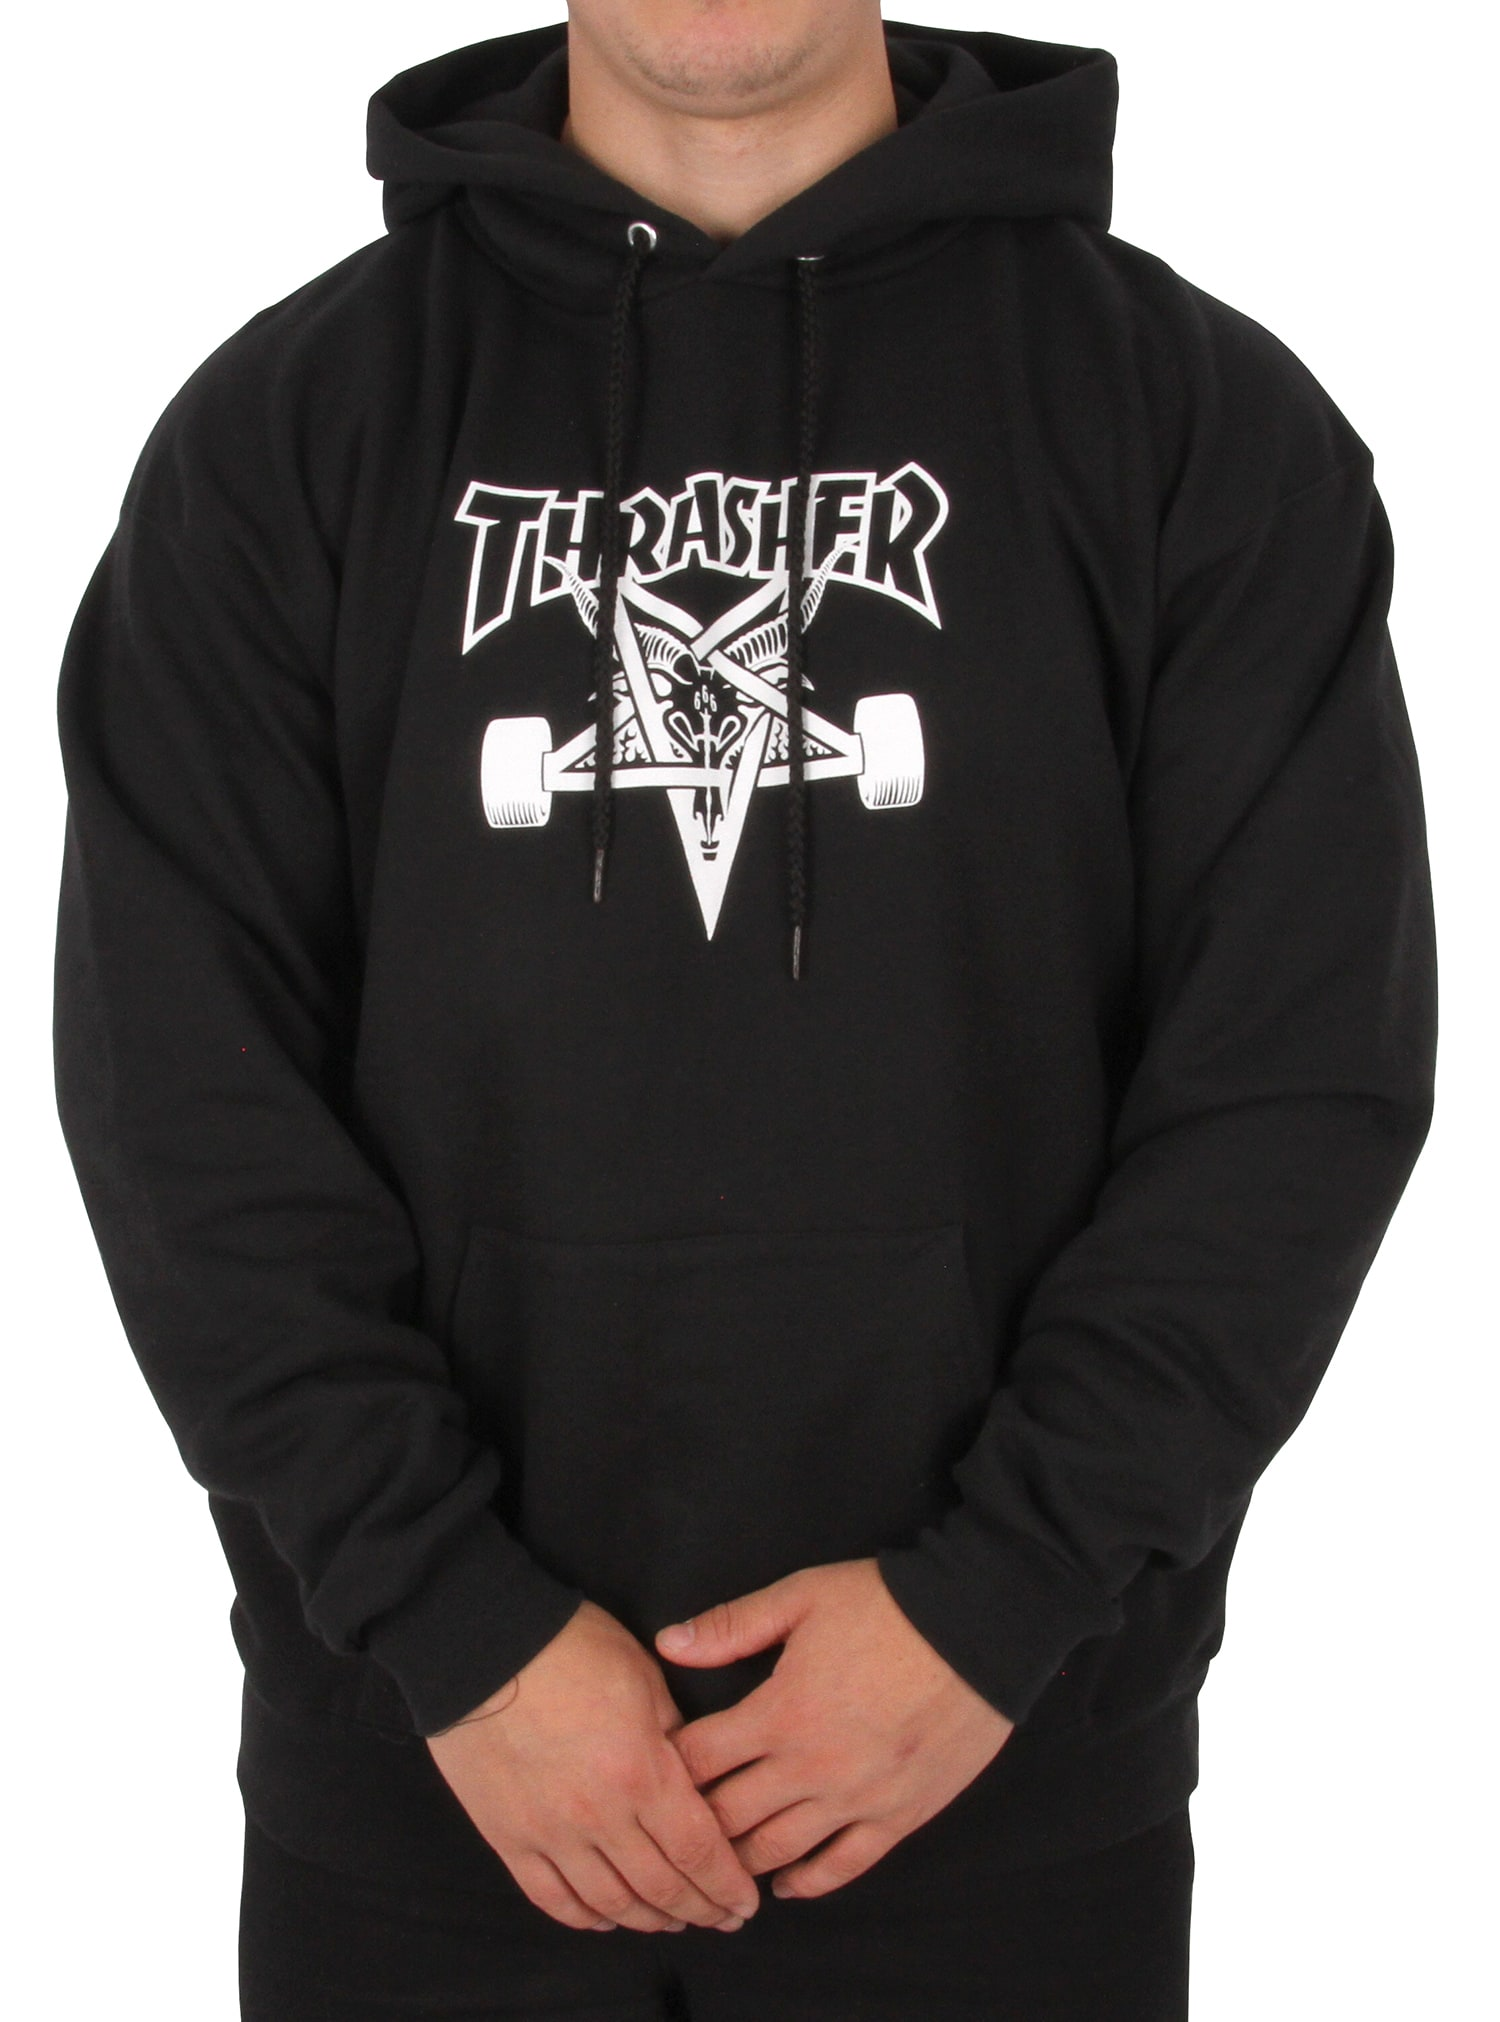 Thrasher Skategoat Hoodie Black Skate Hoodies Cheap